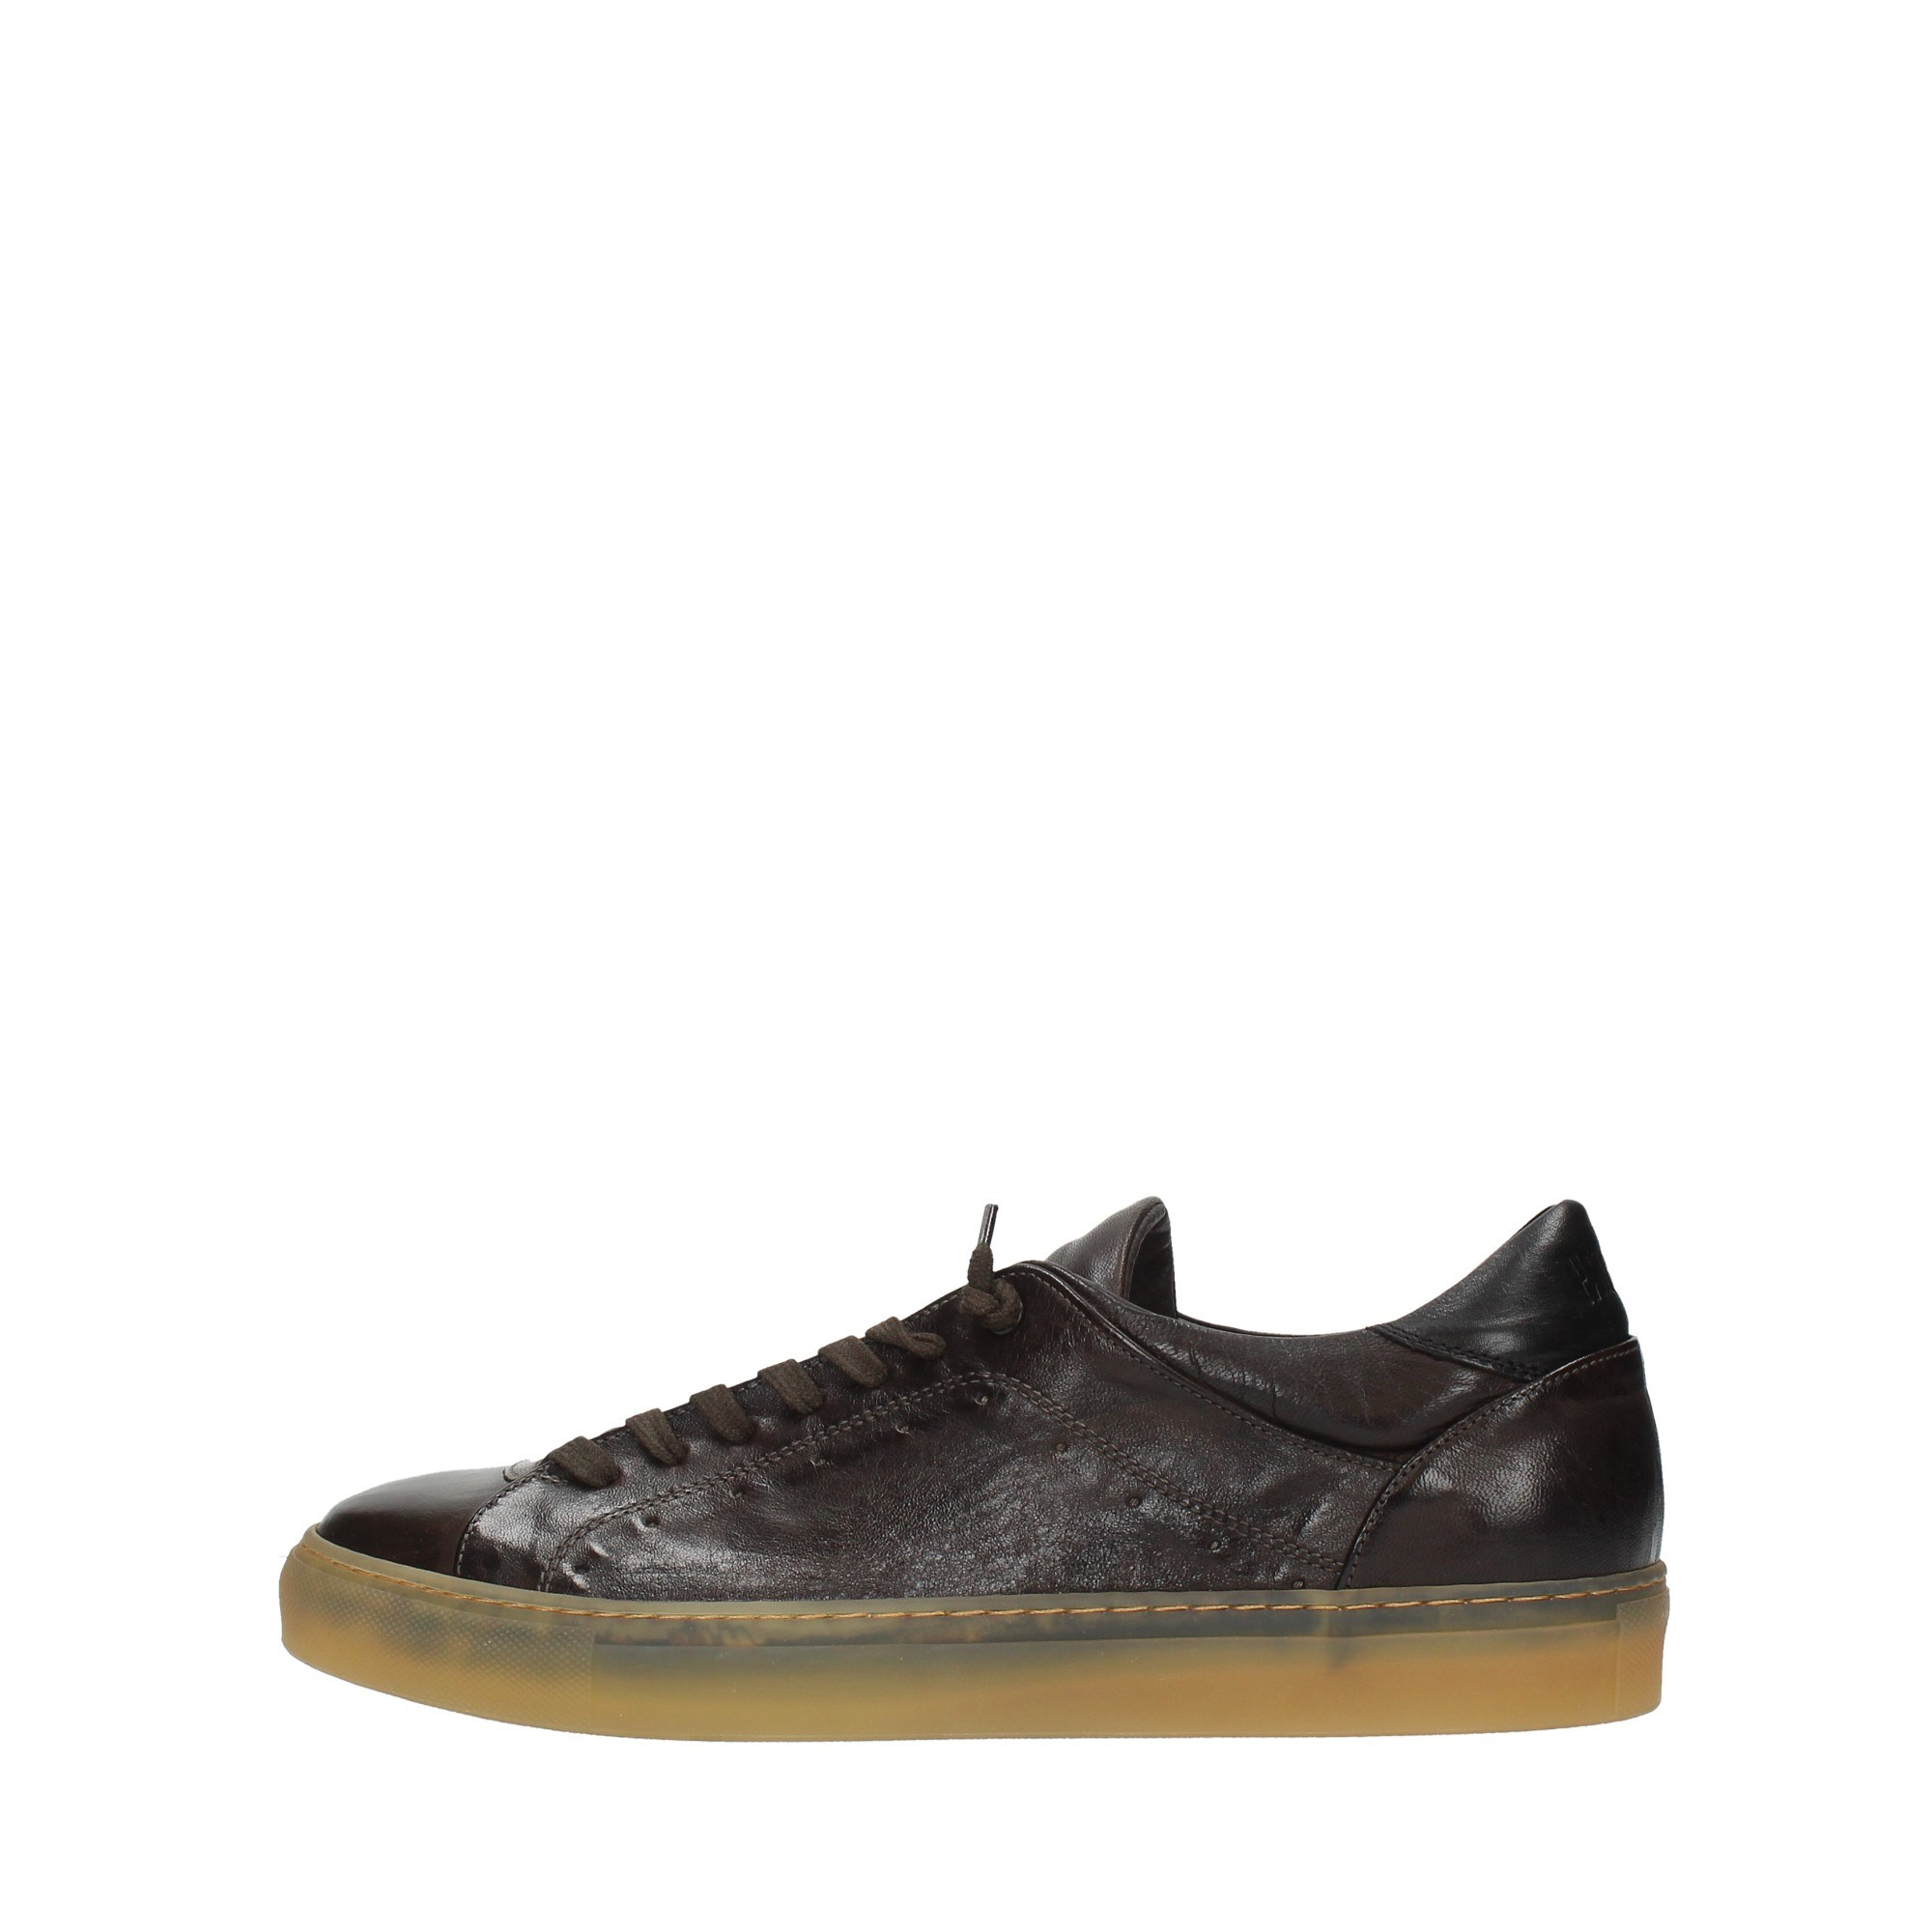 Pawelk's Shoes Man Laced Brown 20620